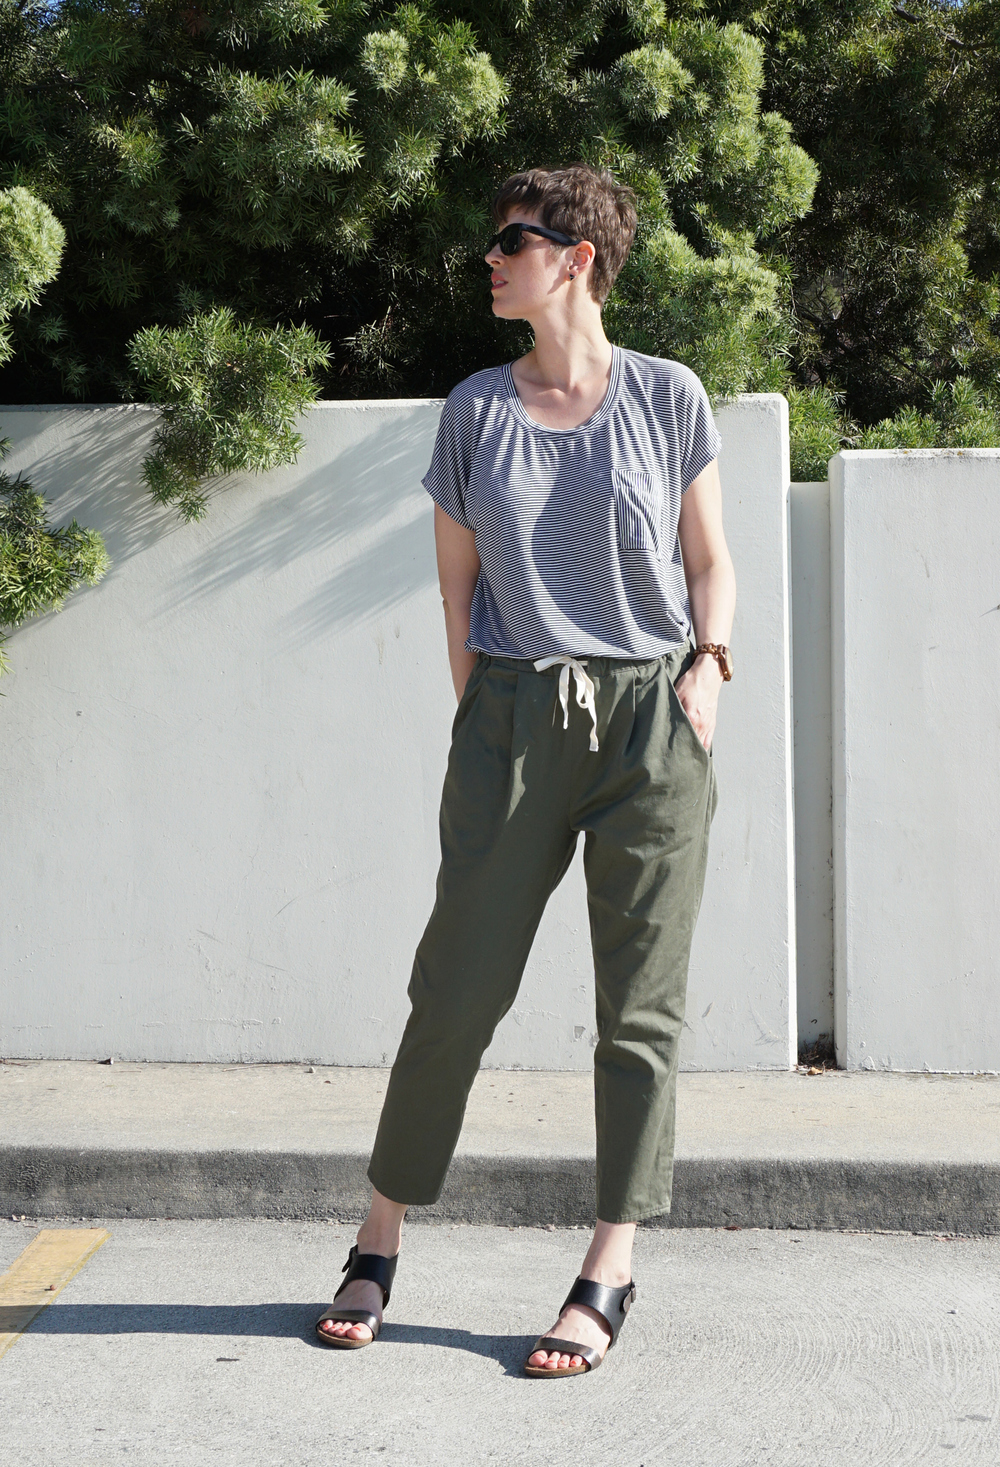 DIY Green Peg Trousers, a review of the Alexandria Trousers pattern by Named Clothing | Sew DIY